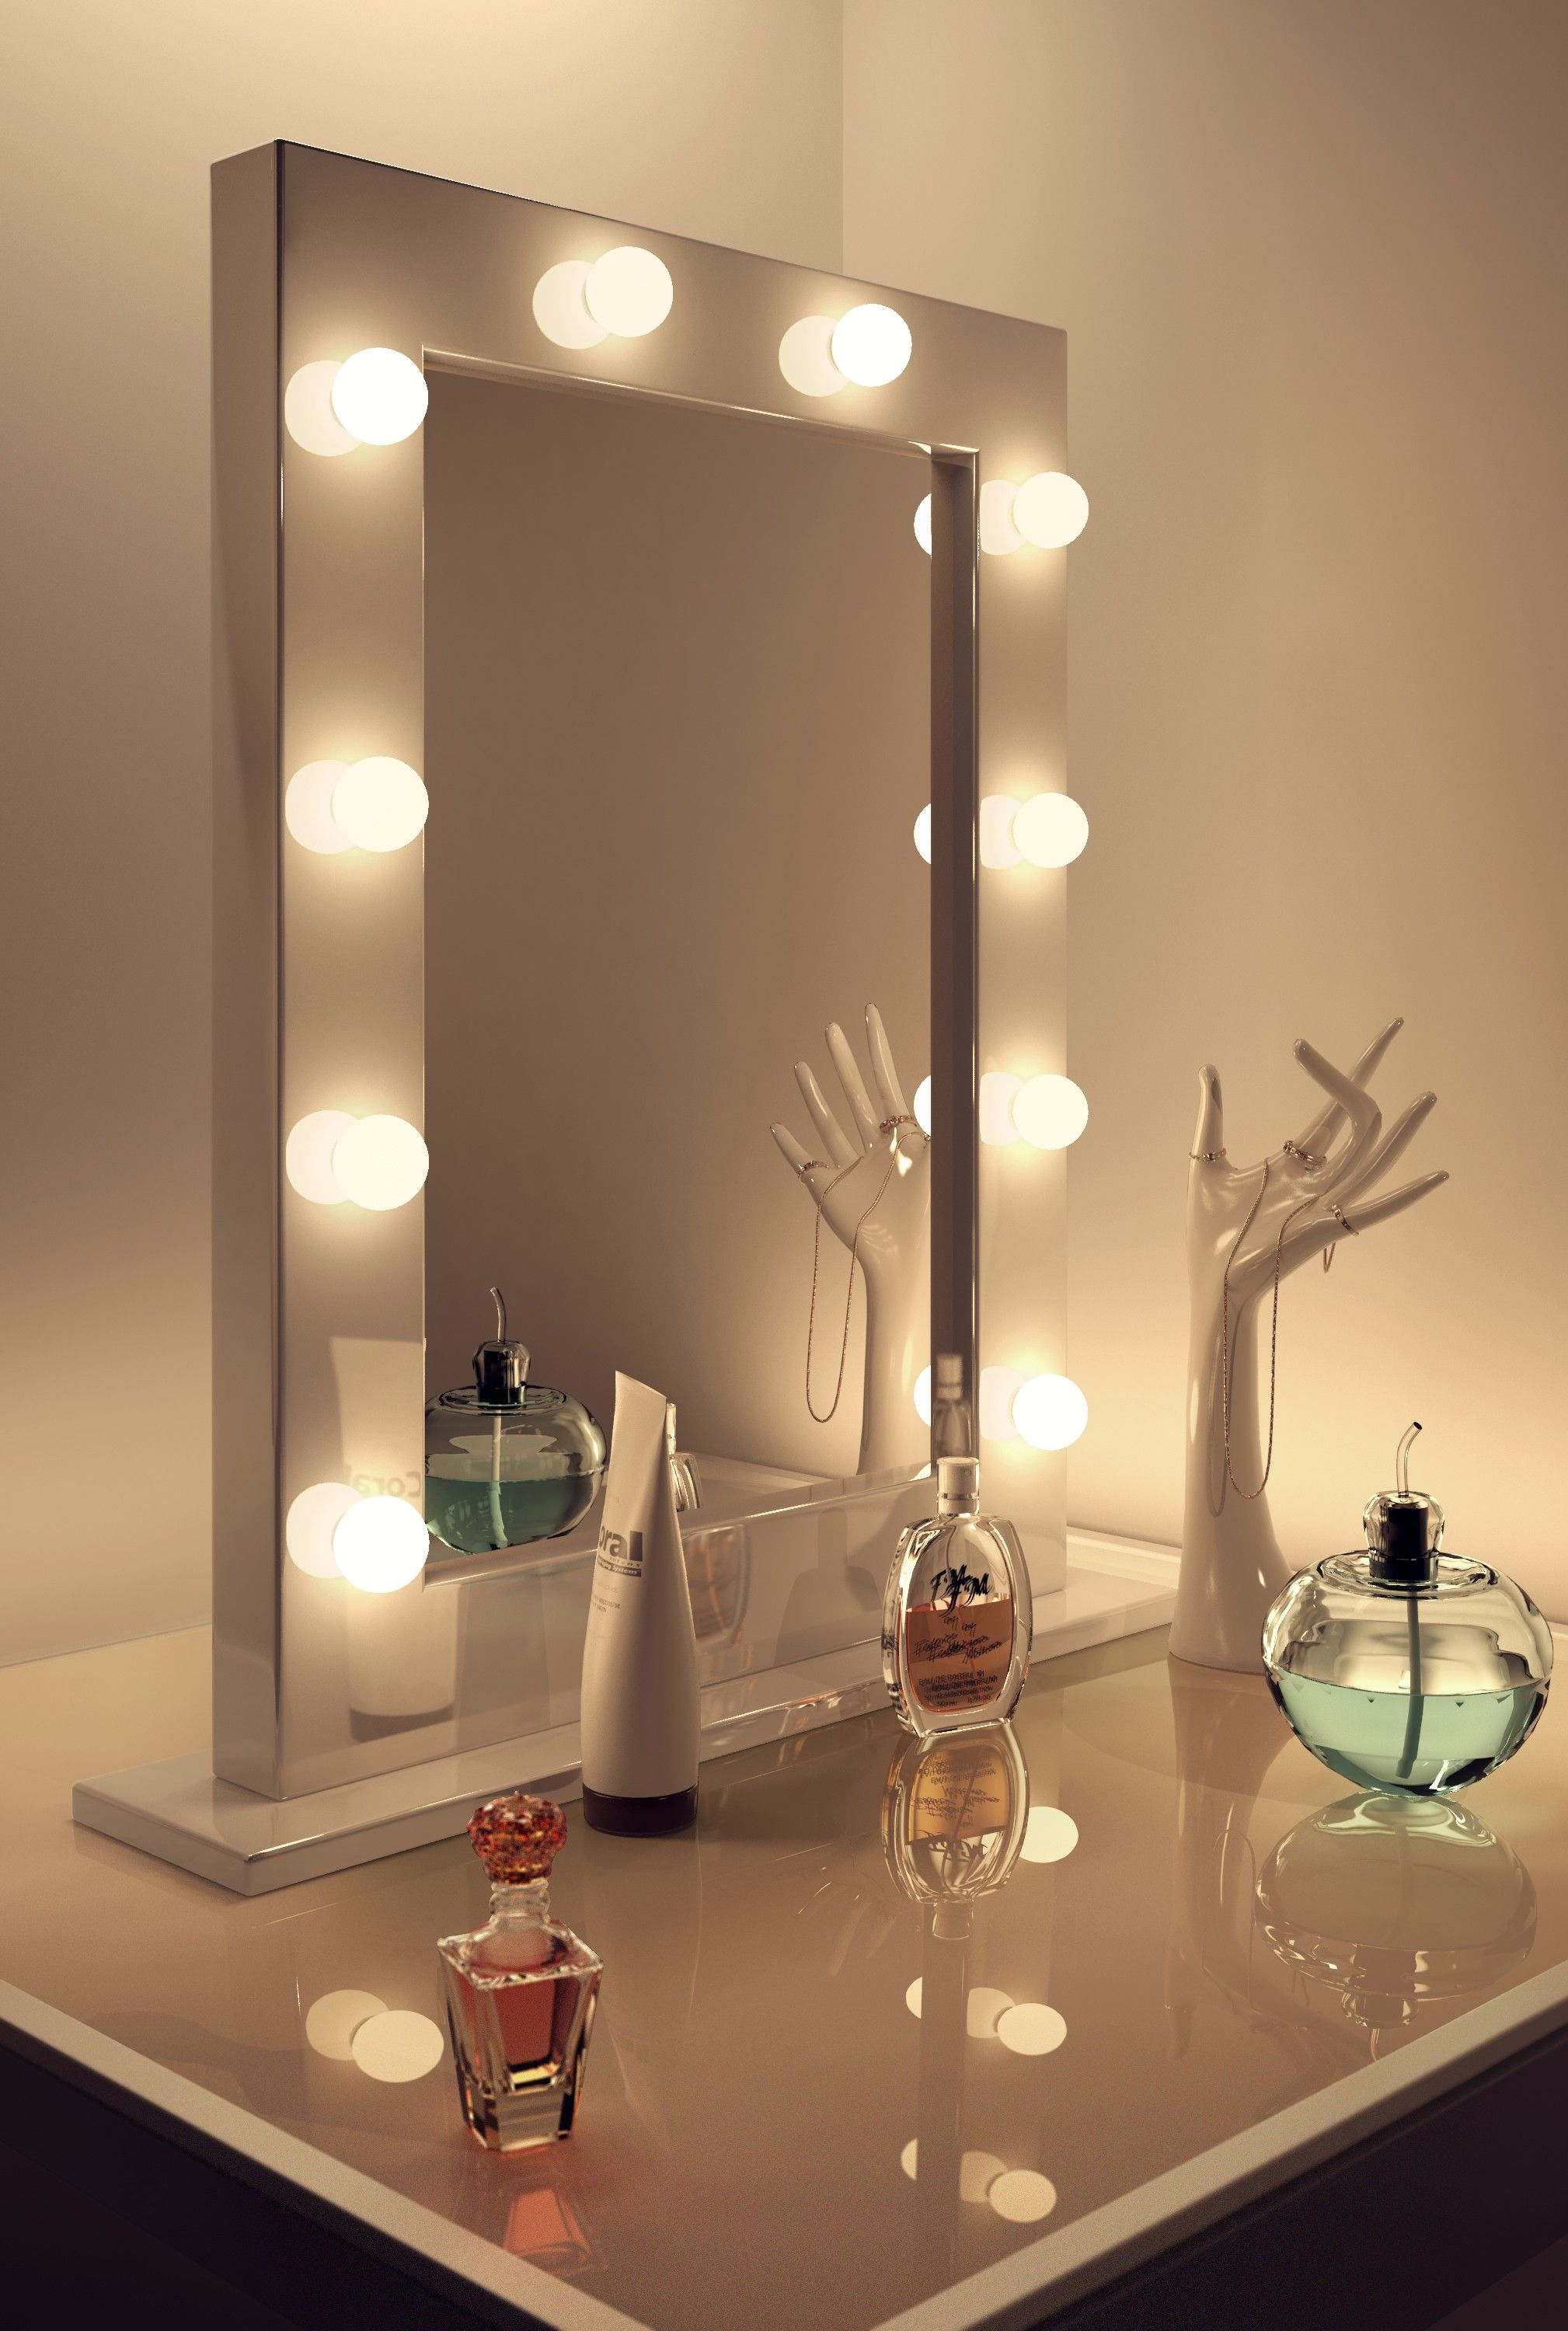 How To Make A Vanity Mirror With Lights Prepossessing 17 Diy Vanity Mirror Ideas To Make Your Room More Beautiful